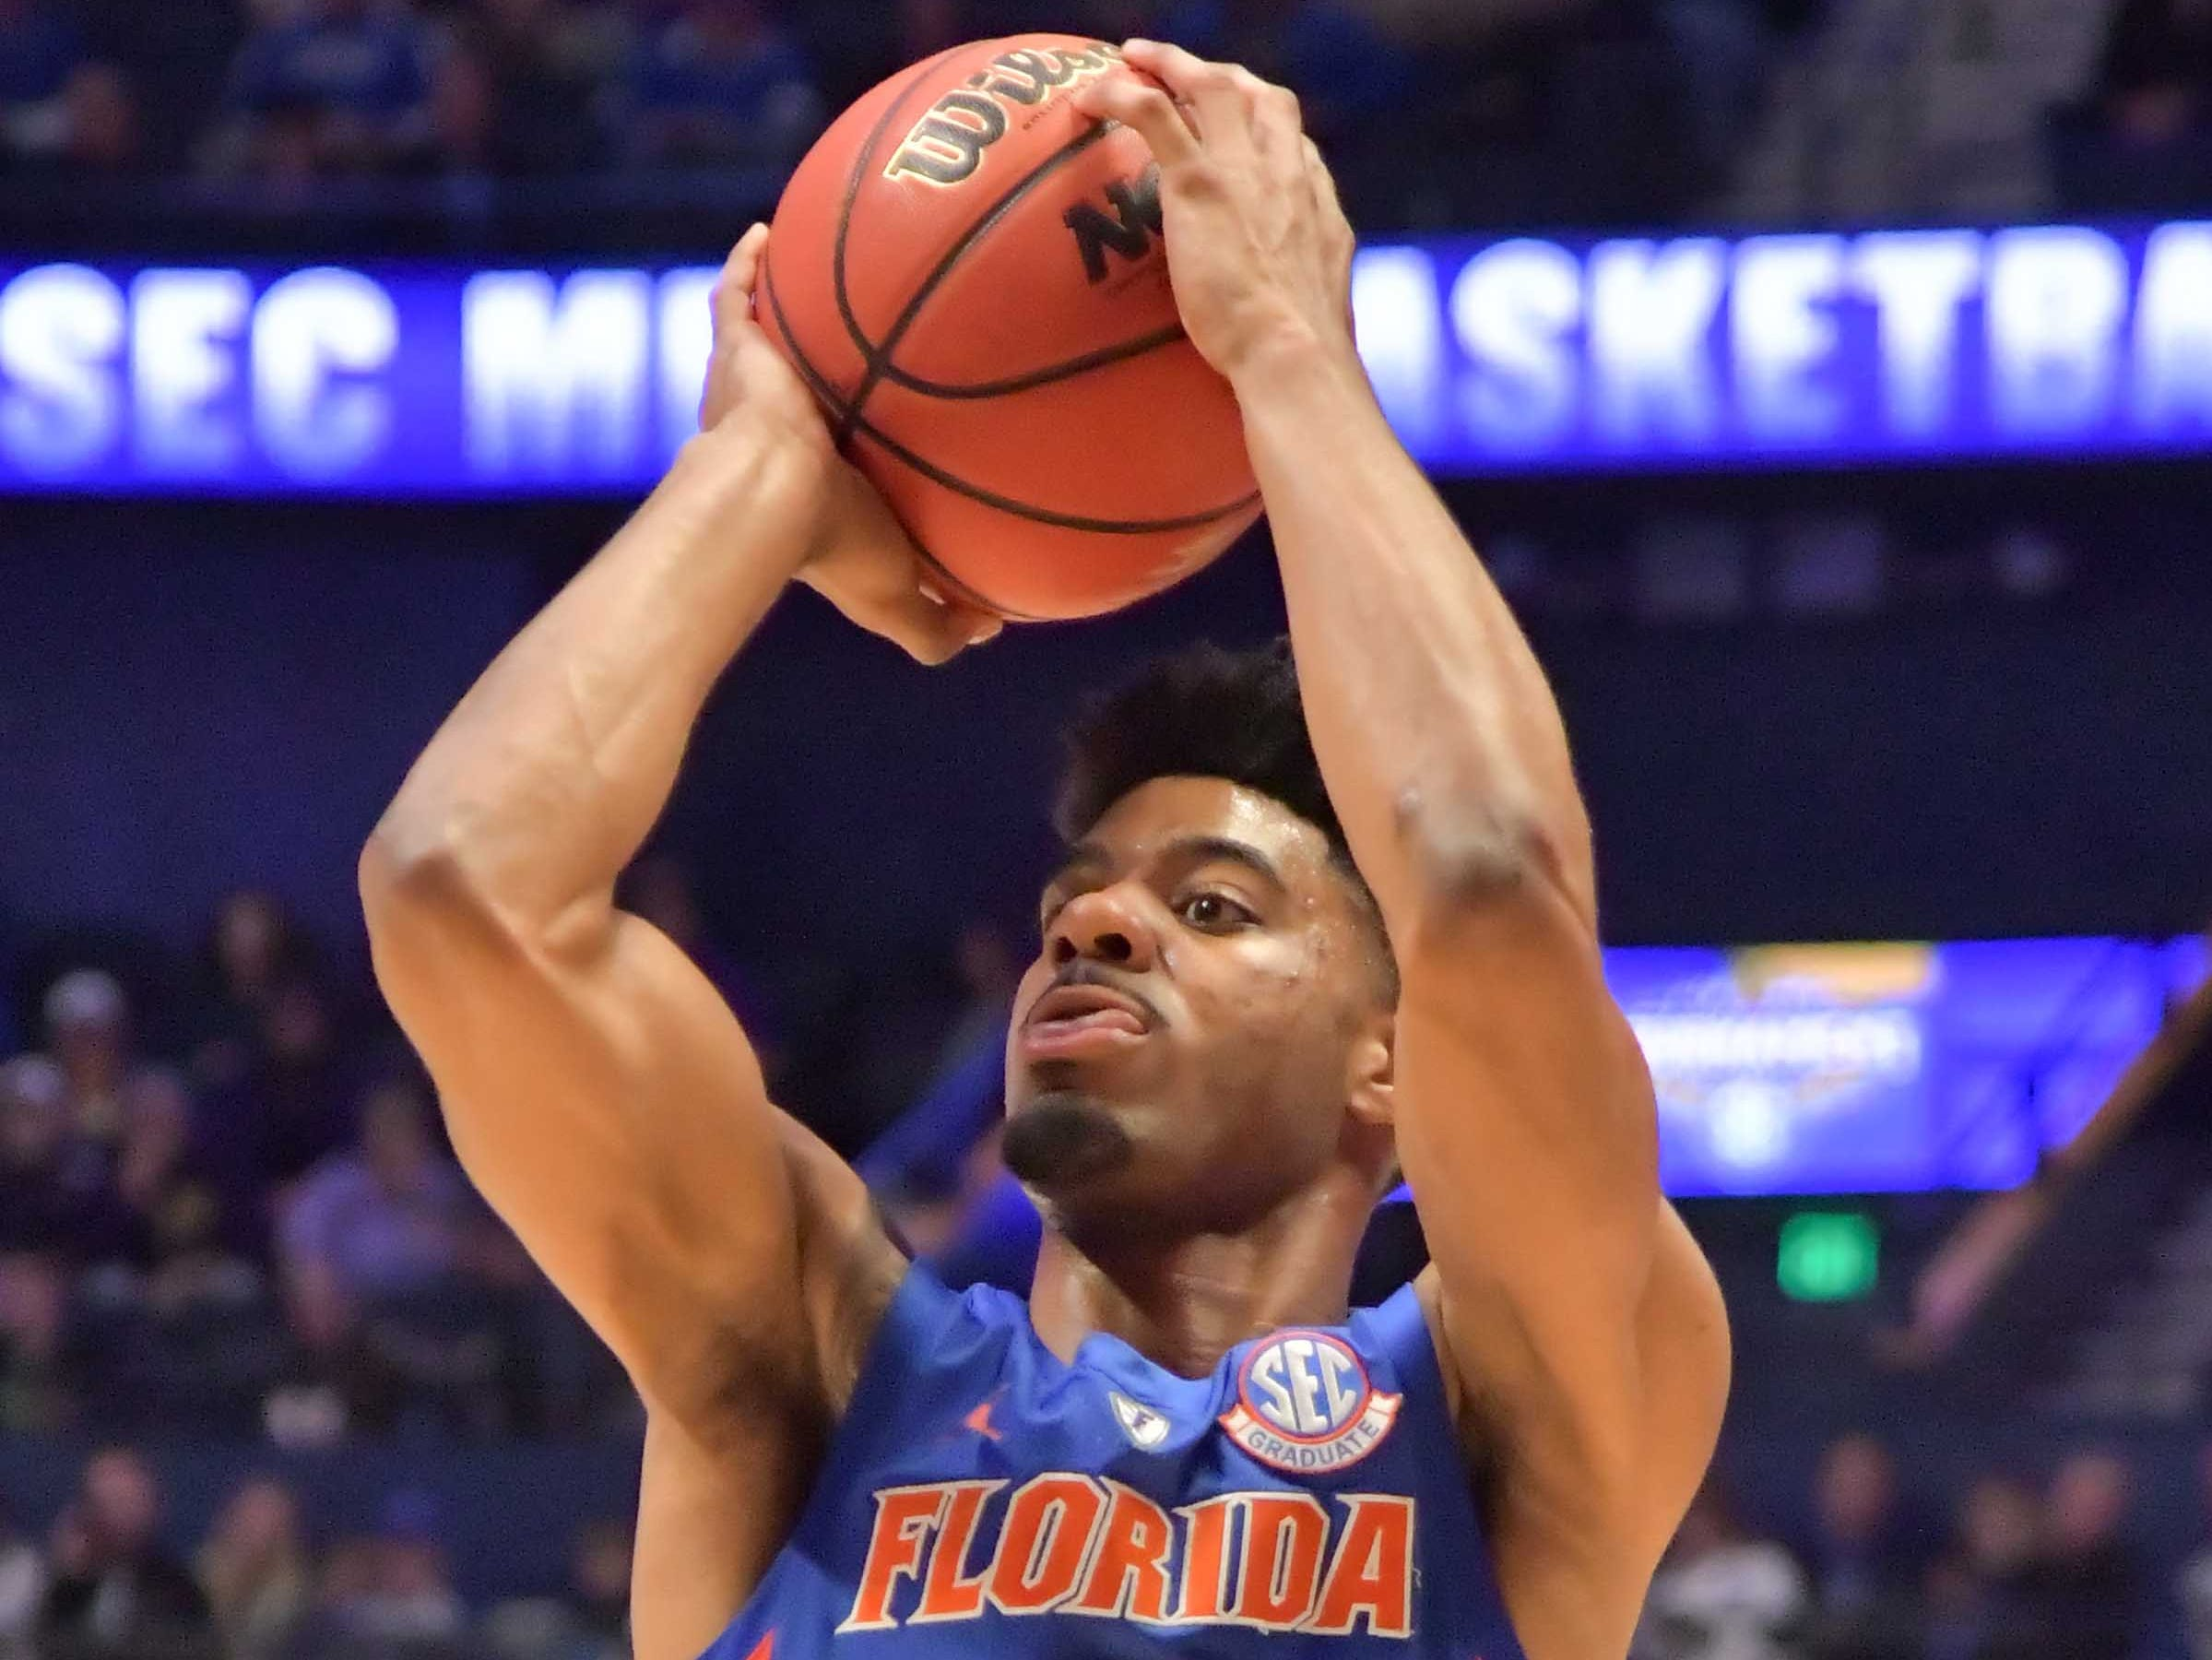 Mar 15, 2019; Nashville, TN, USA; Florida Gators guard Jalen Hudson (3) shoots against the LSU Tigers during the first half of game seven in the SEC conference tournament at Bridgestone Arena. Mandatory Credit: Jim Brown-USA TODAY Sports